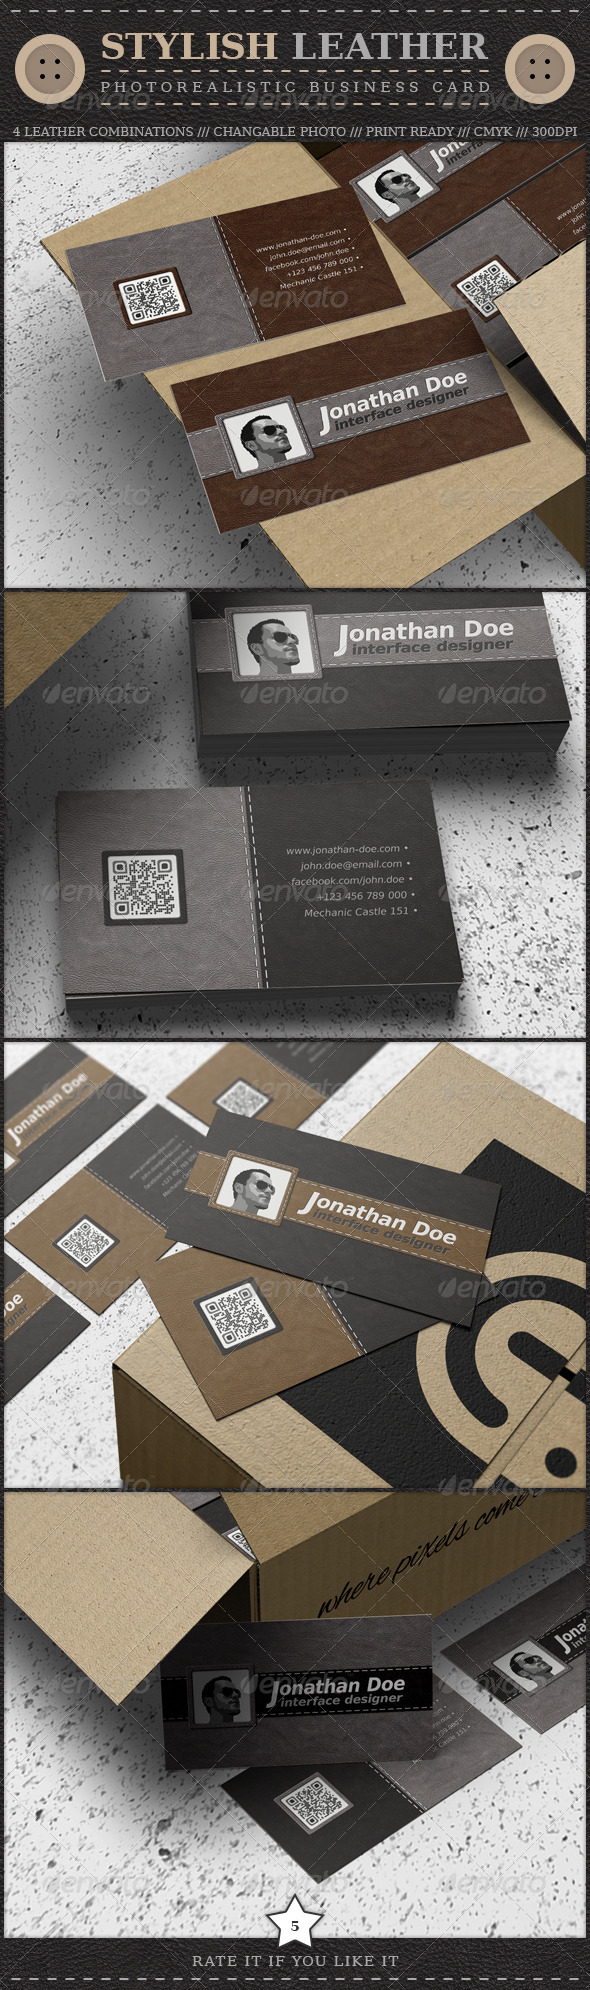 Stylish Leather Business Card - Retro/Vintage Business Cards